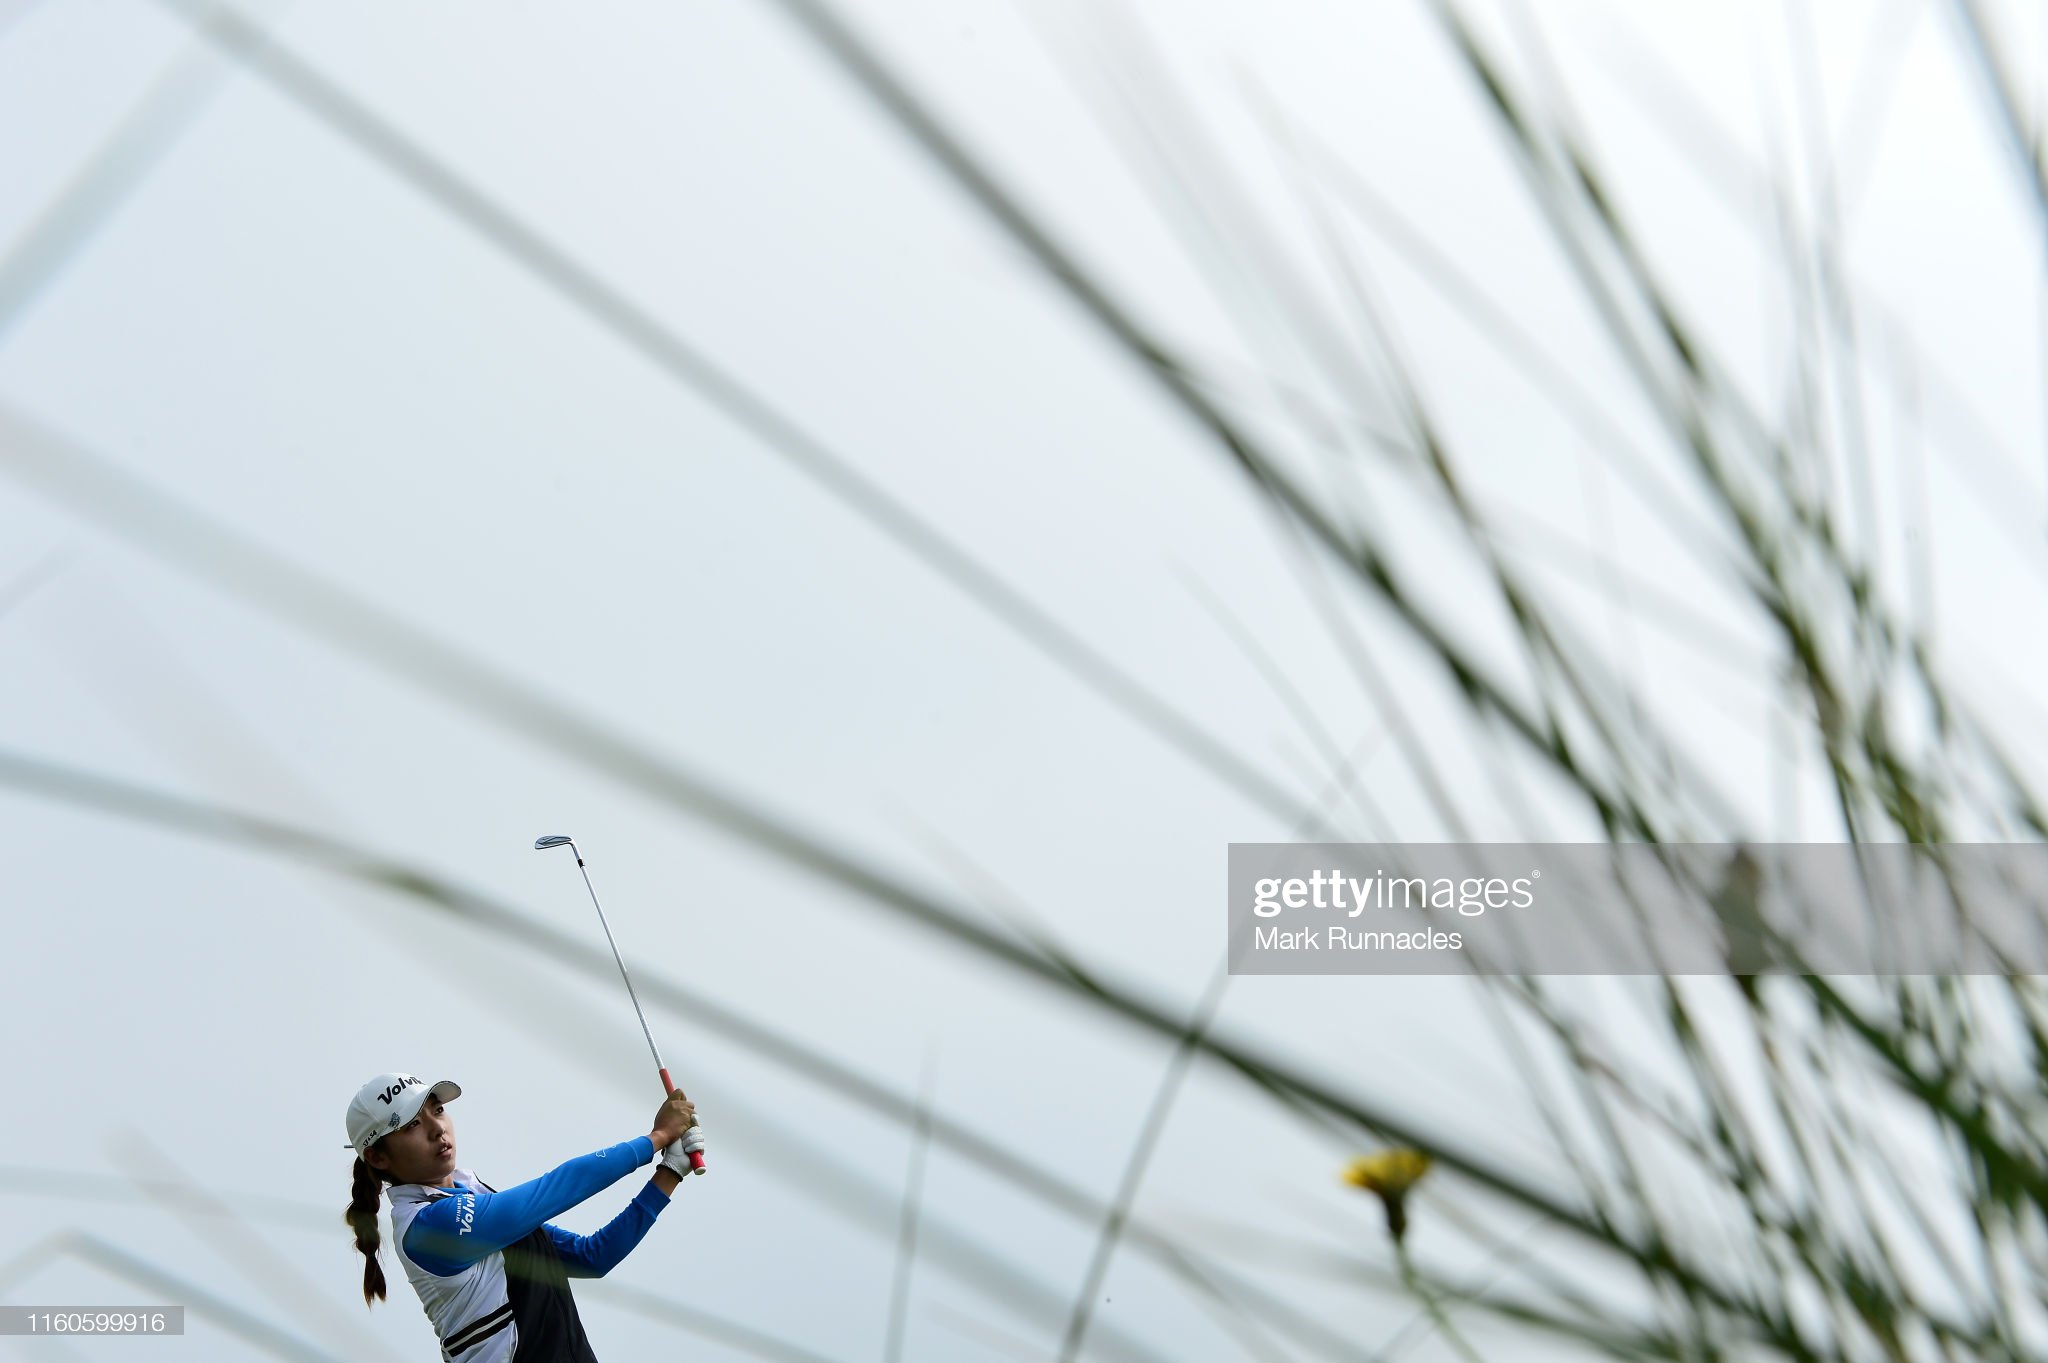 https://media.gettyimages.com/photos/mi-hyang-lee-of-korea-plays-her-tee-shot-to-the-5th-hole-during-the-picture-id1160599916?s=2048x2048